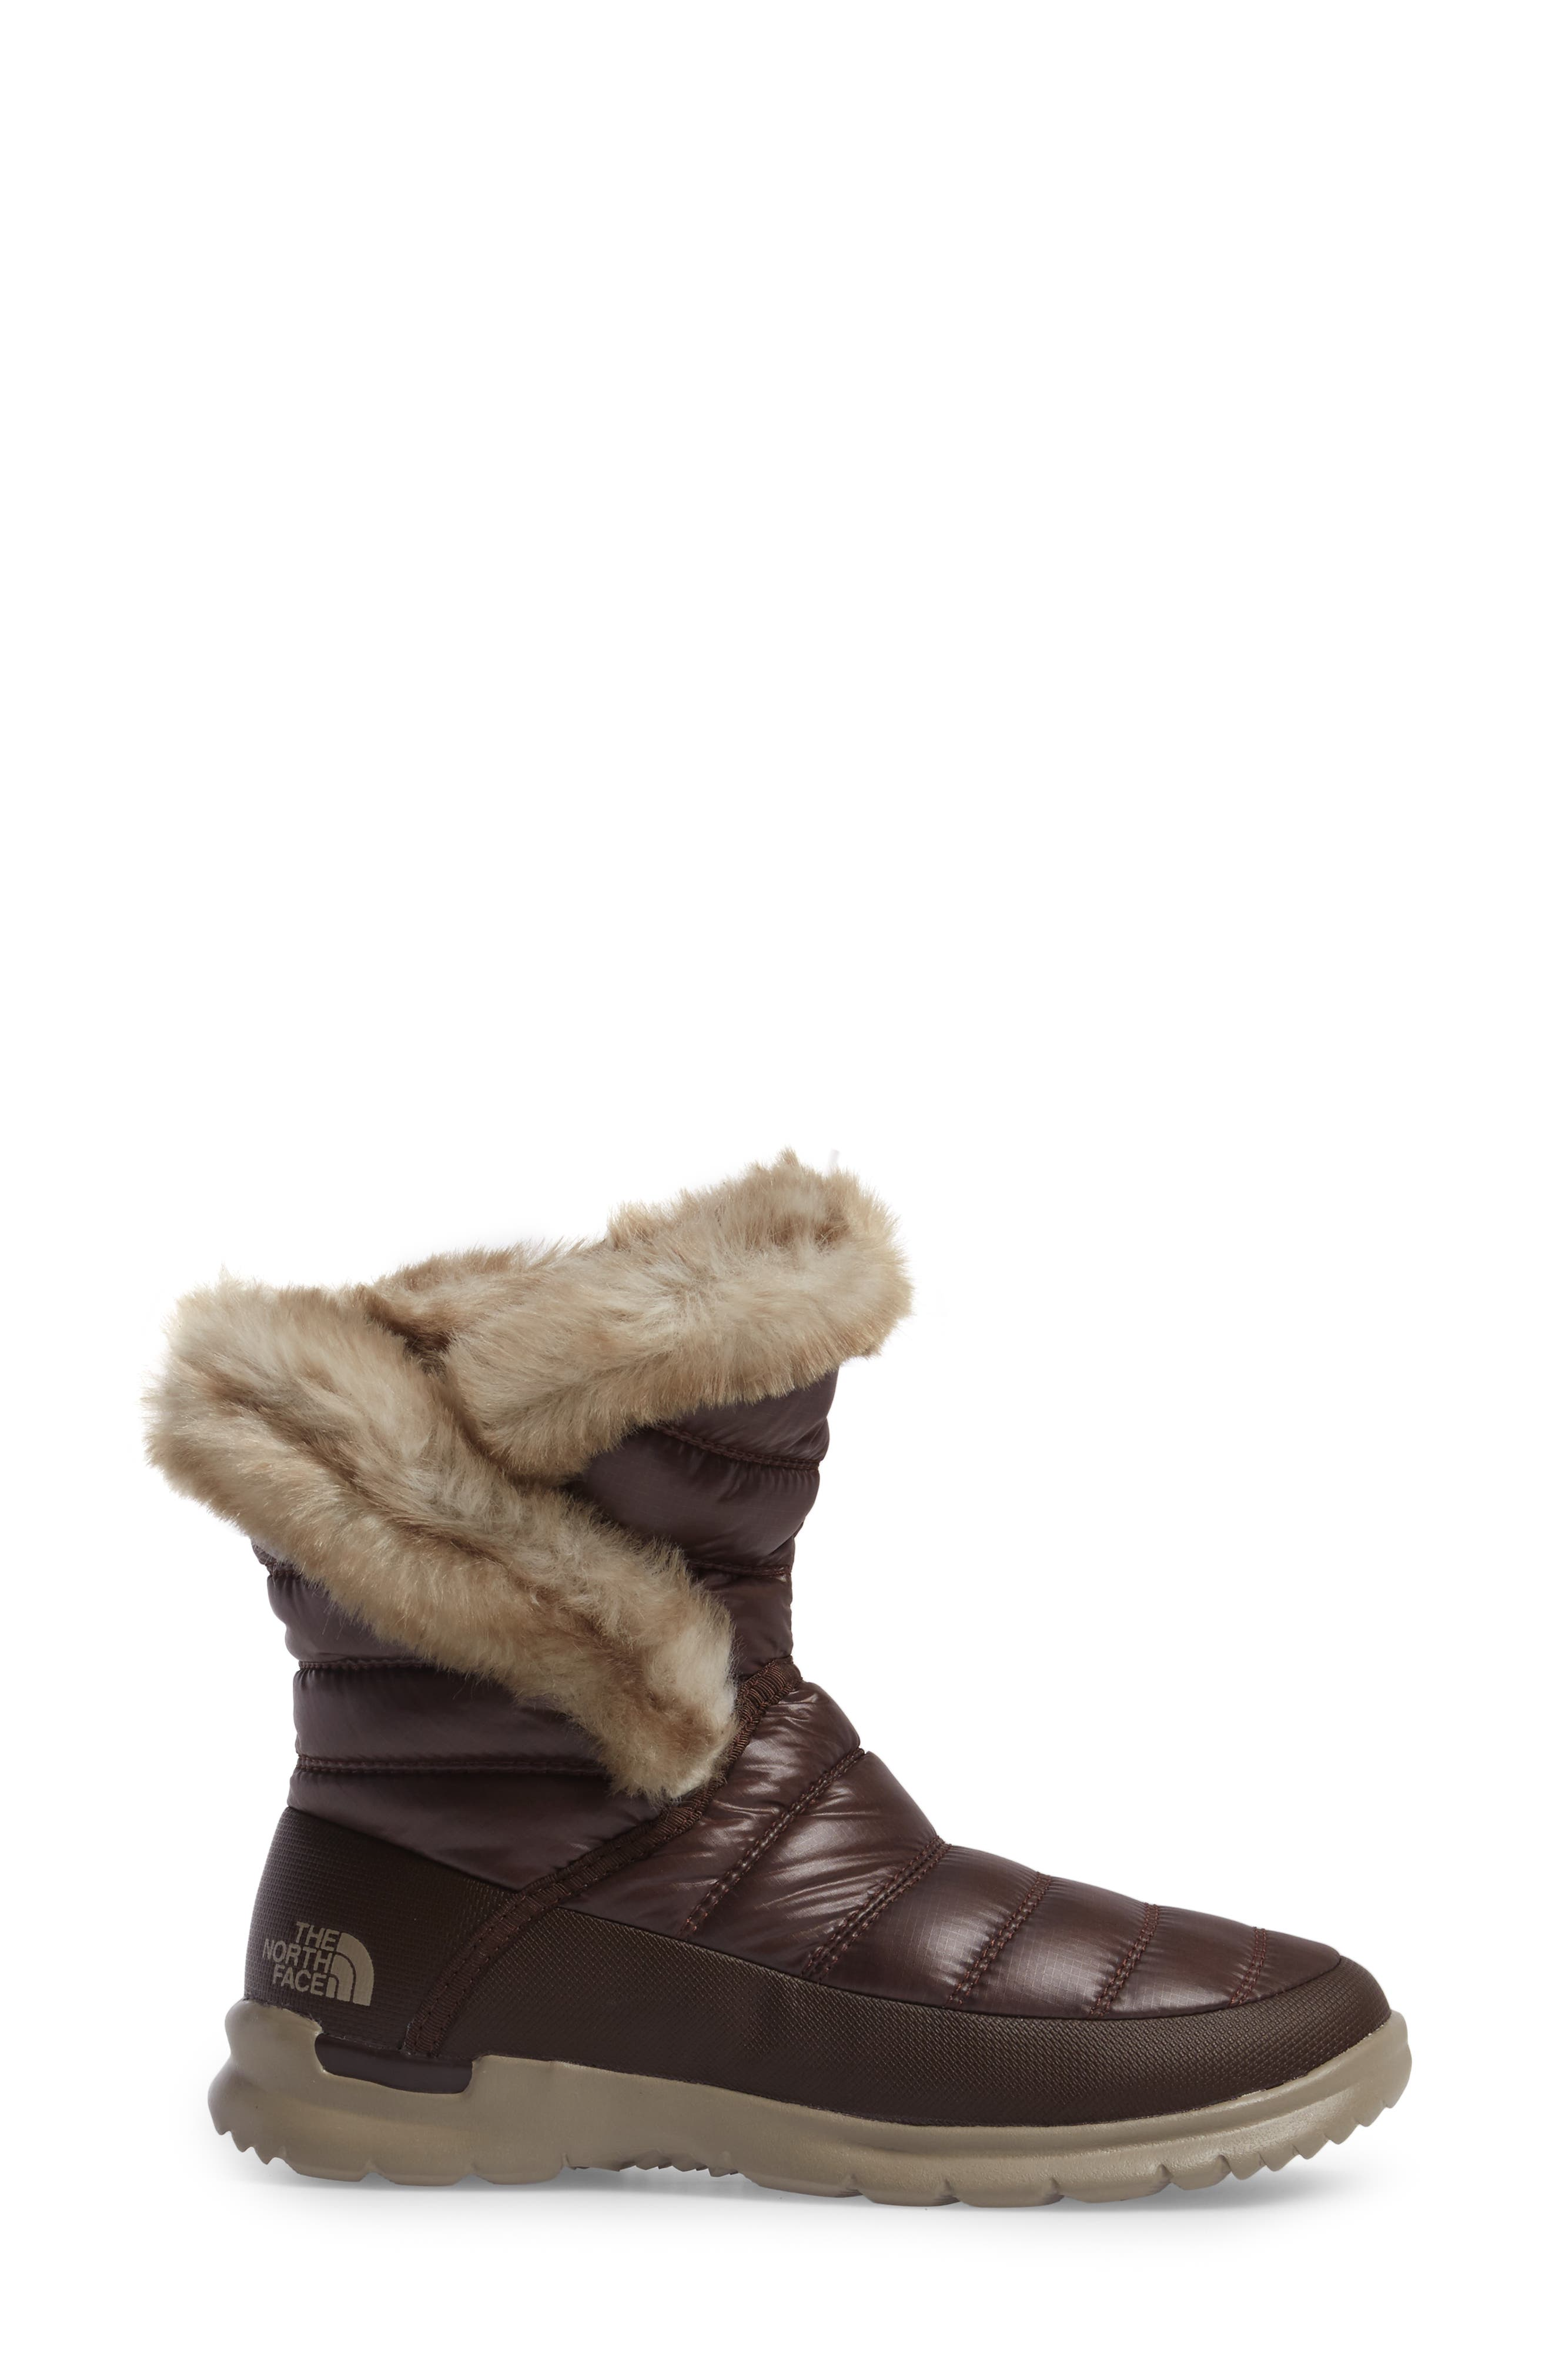 Alternate Image 3  - The North Face Microbaffle Waterproof ThermoBall™ Insulated Winter Boot (Women)